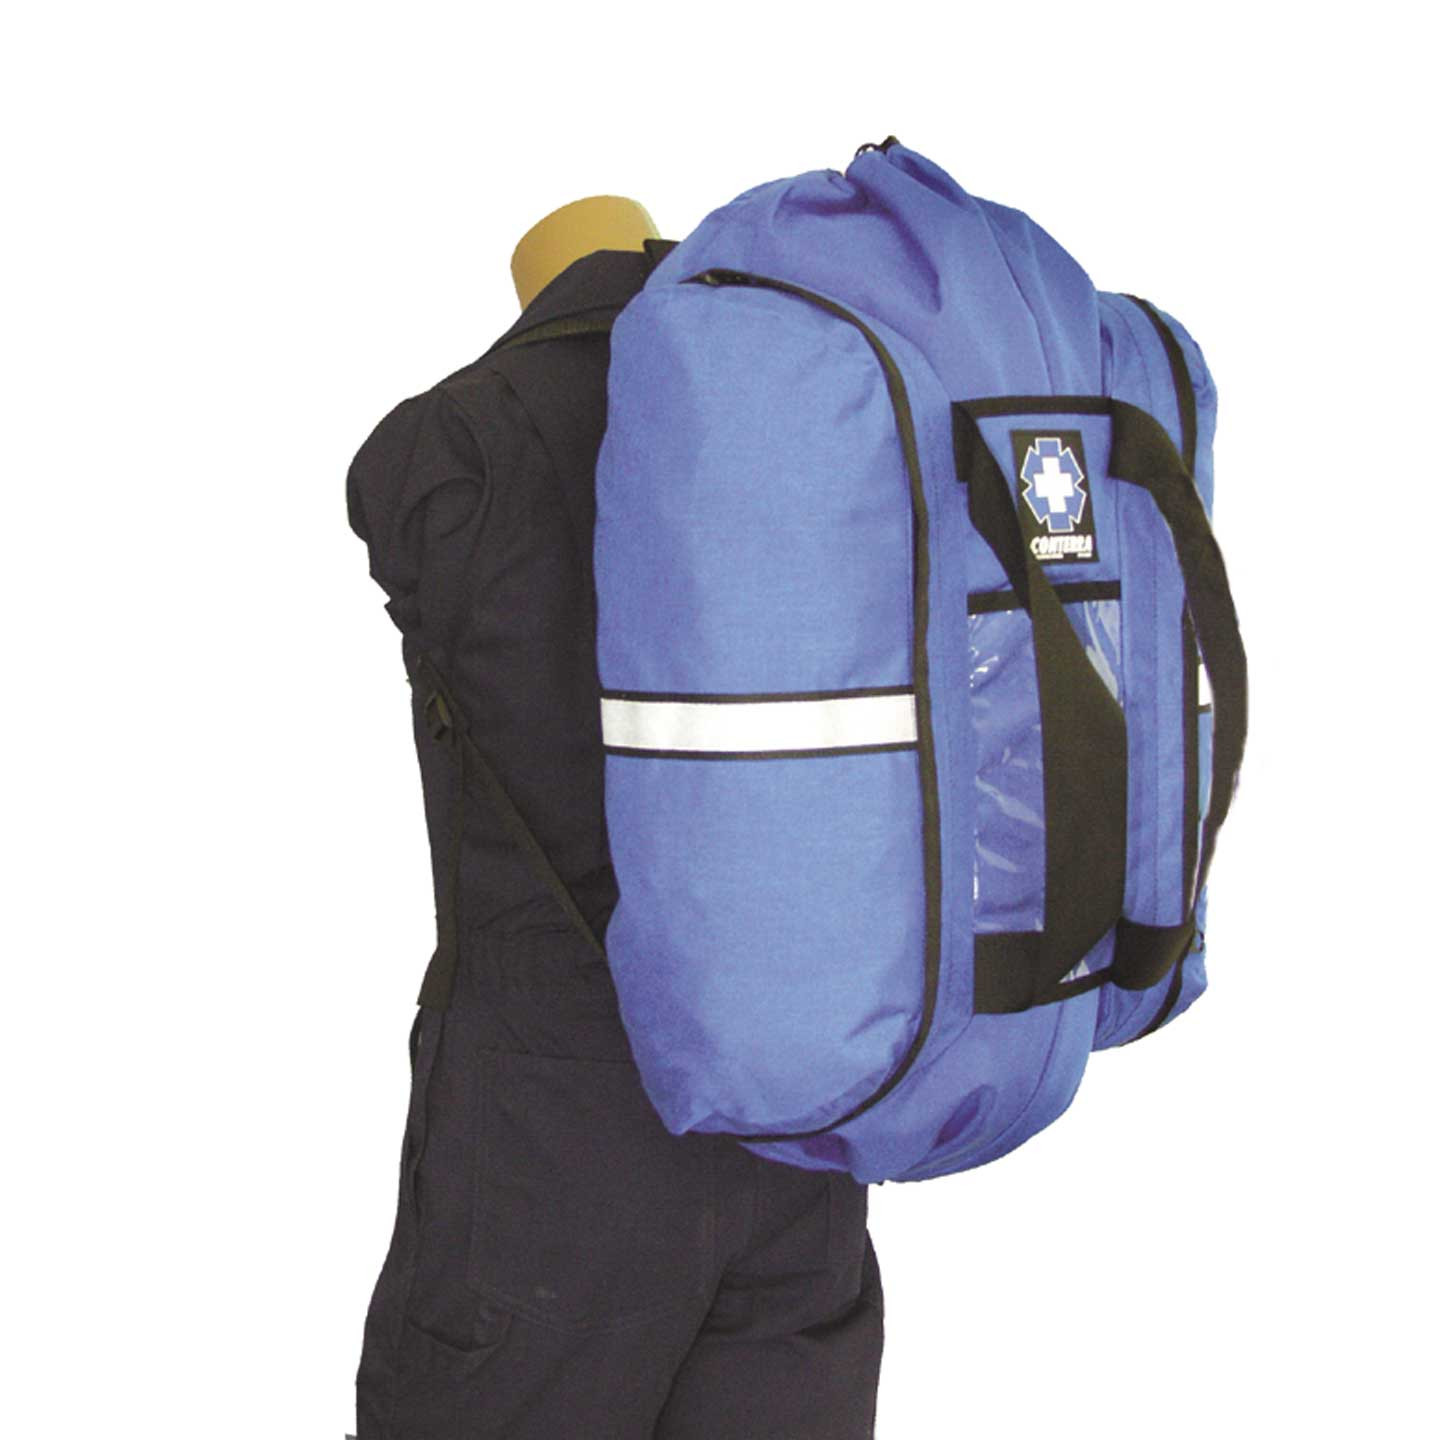 Conterra Rigging Bag worn as a backpack.